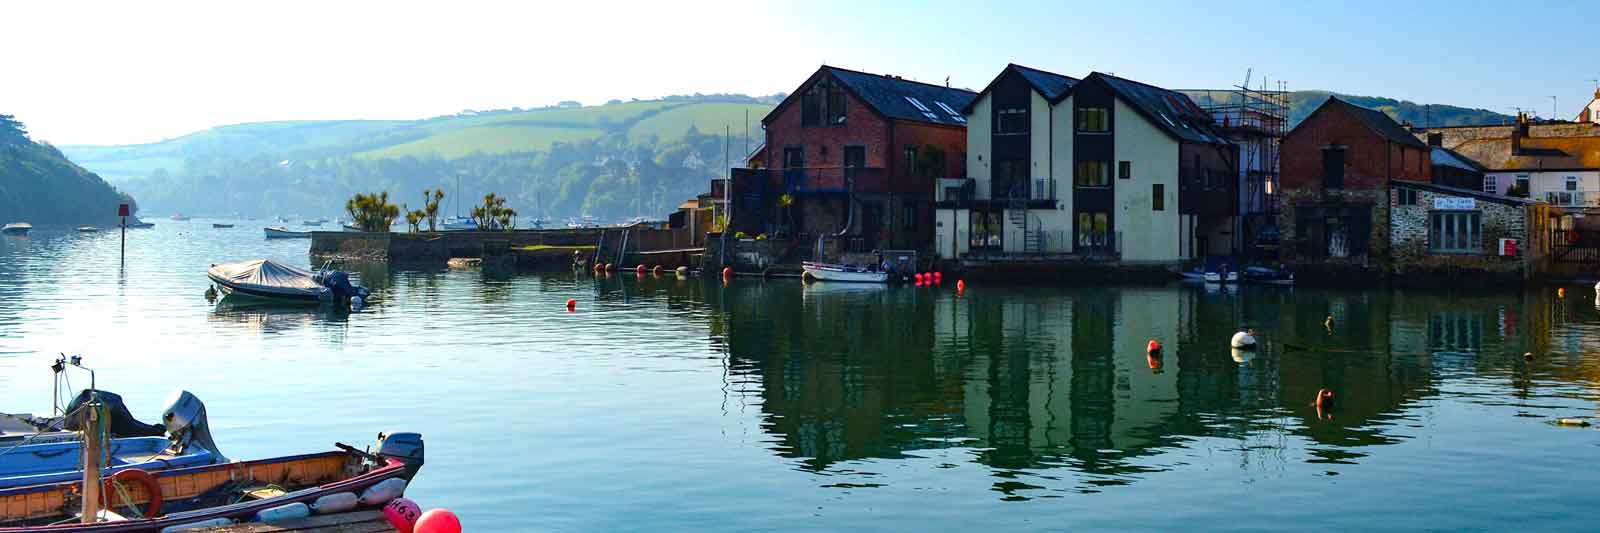 Salcombe summer morning, seen from the CrabShed